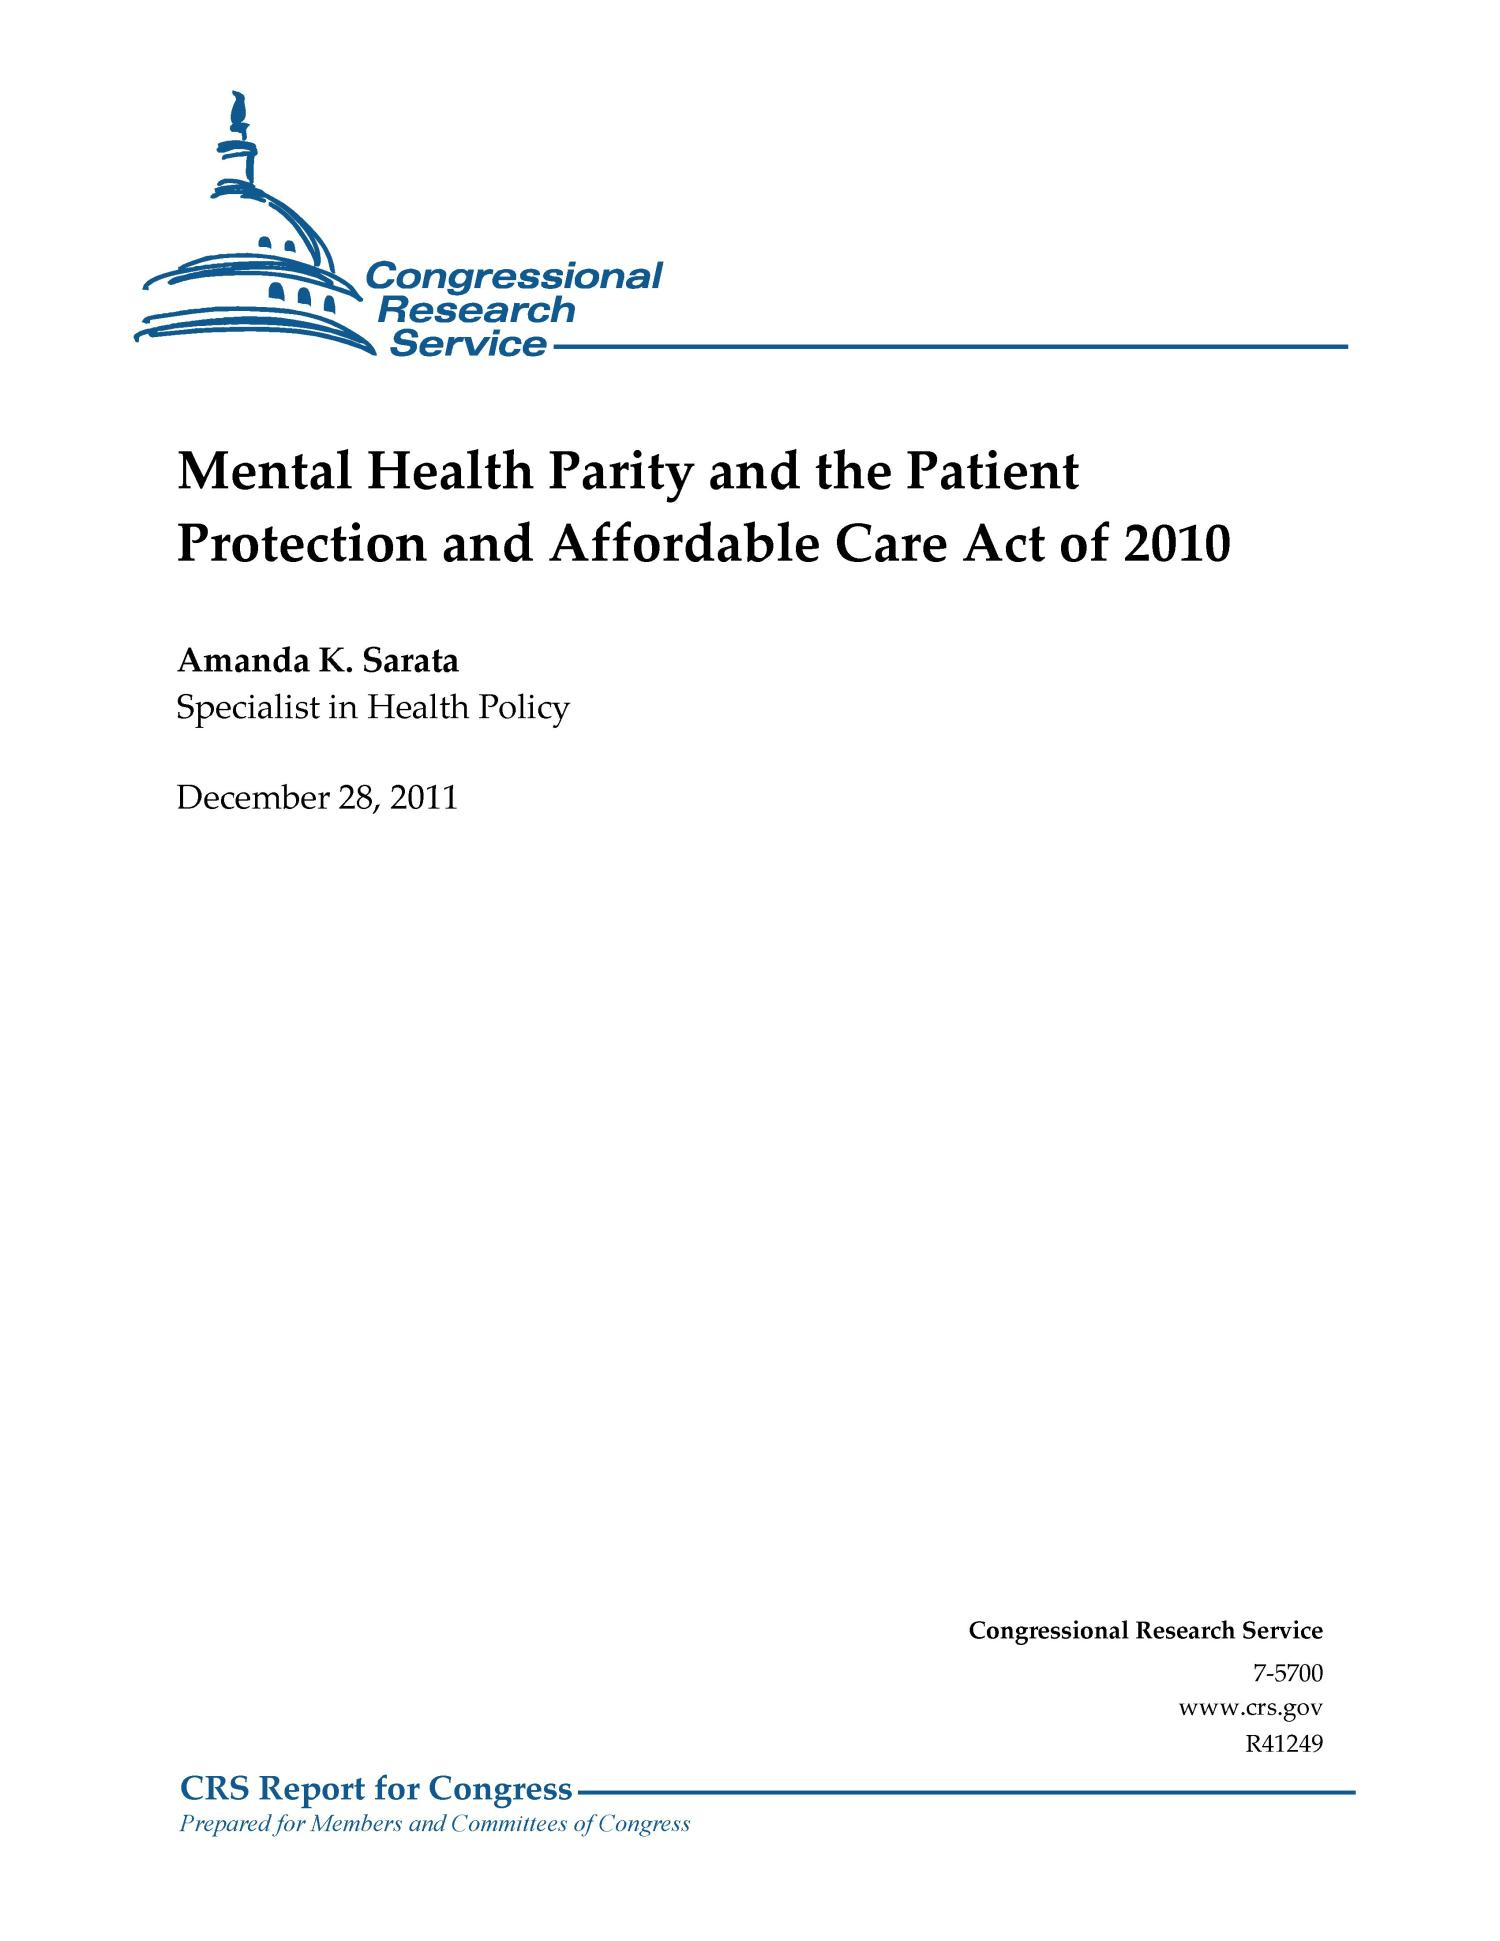 Mental Health Parity and the Patient Protection and ...